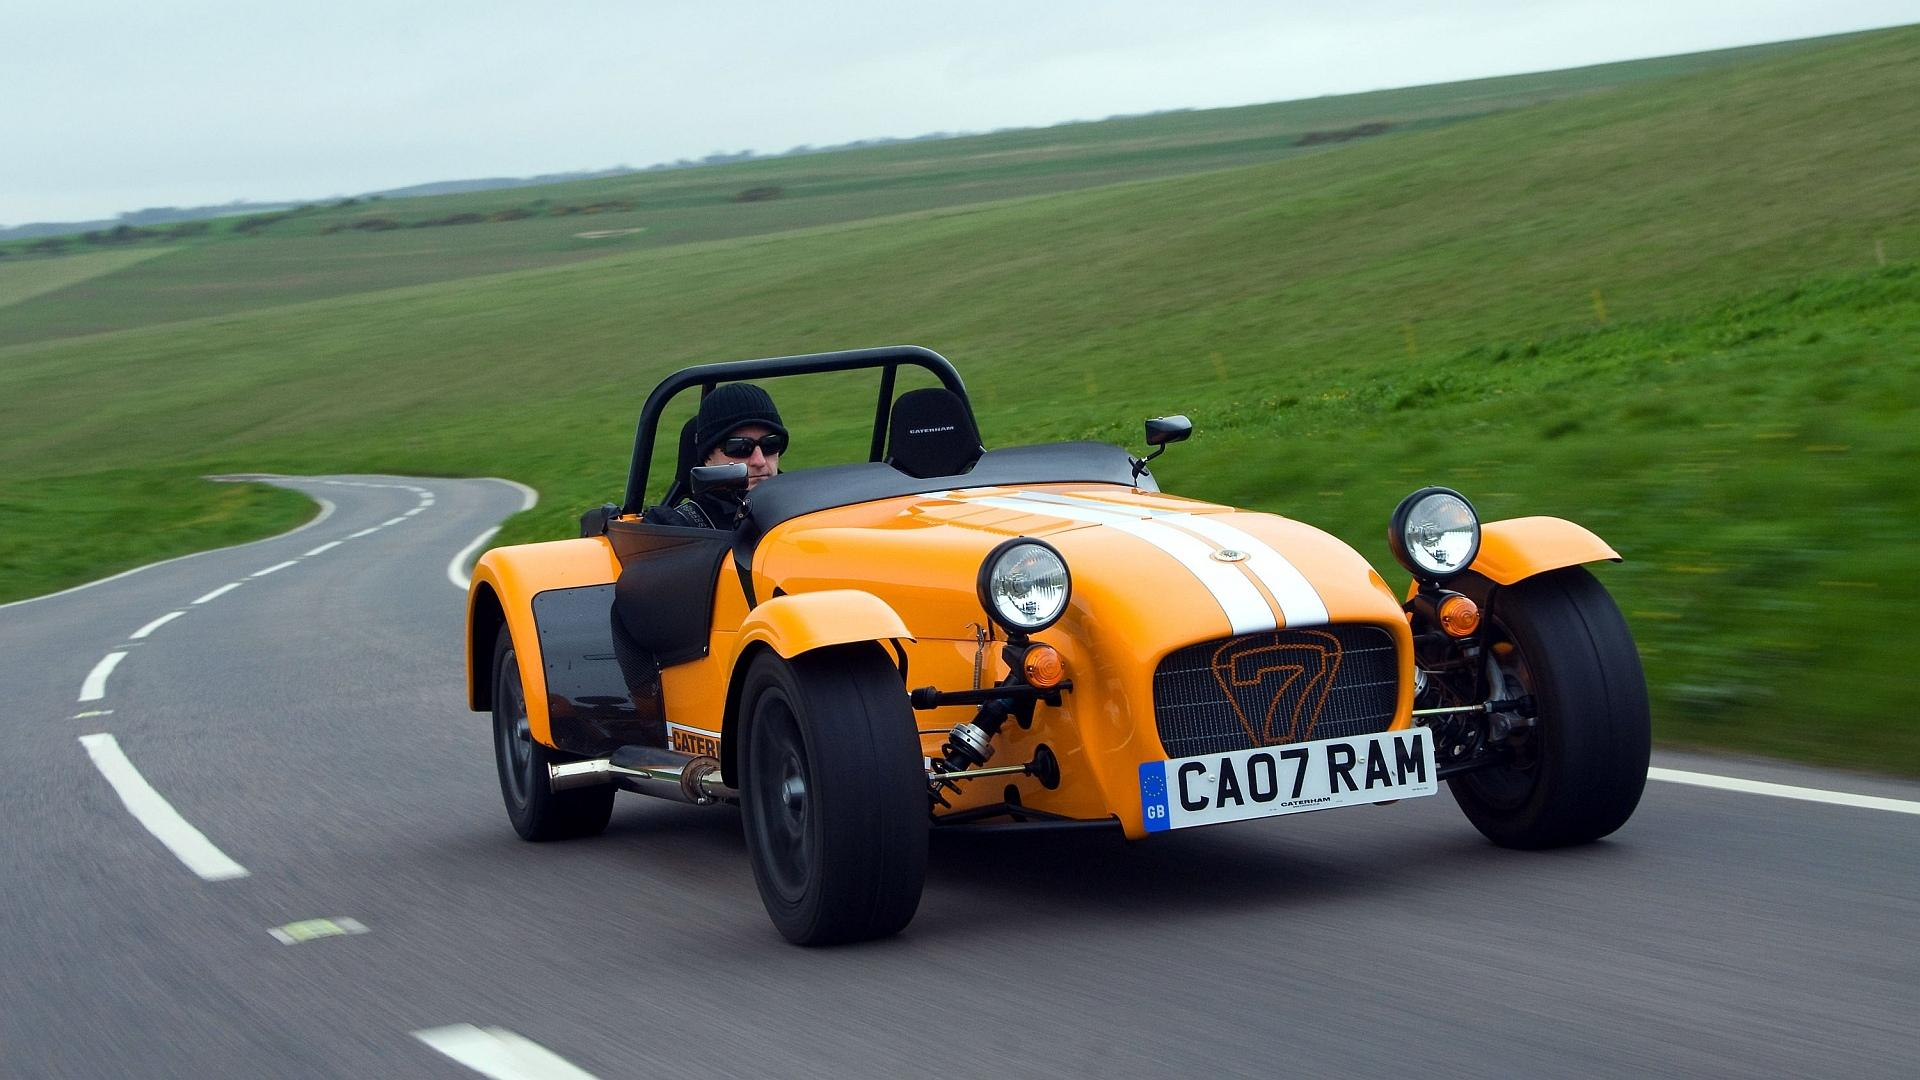 Caterham wallpapers HD quality